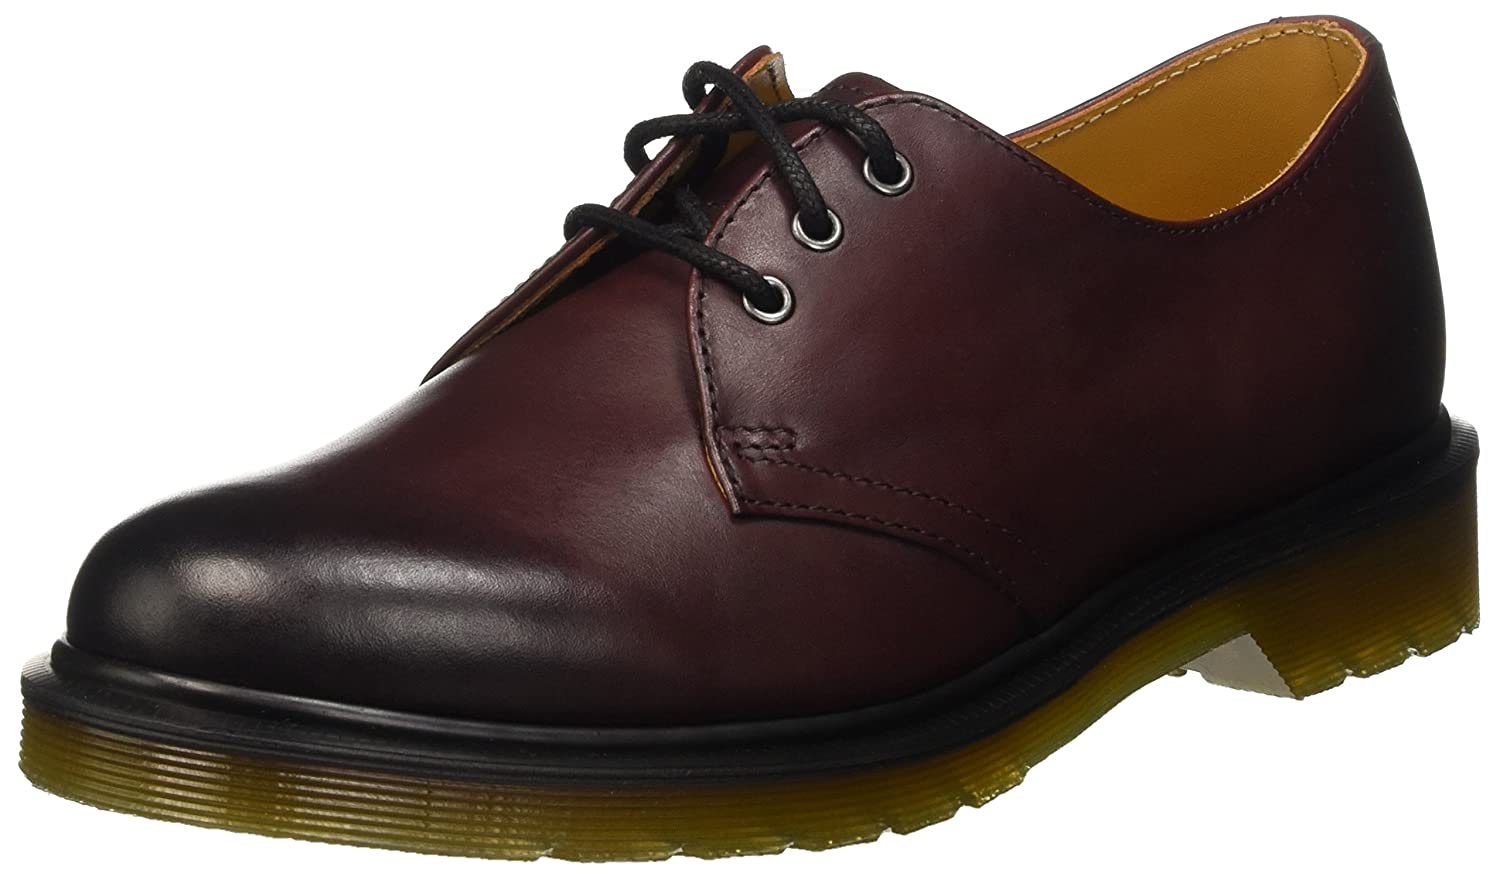 Dr. Martens 1461 Cherry Red Antique Temperley, Mocasines Unisex Adulto